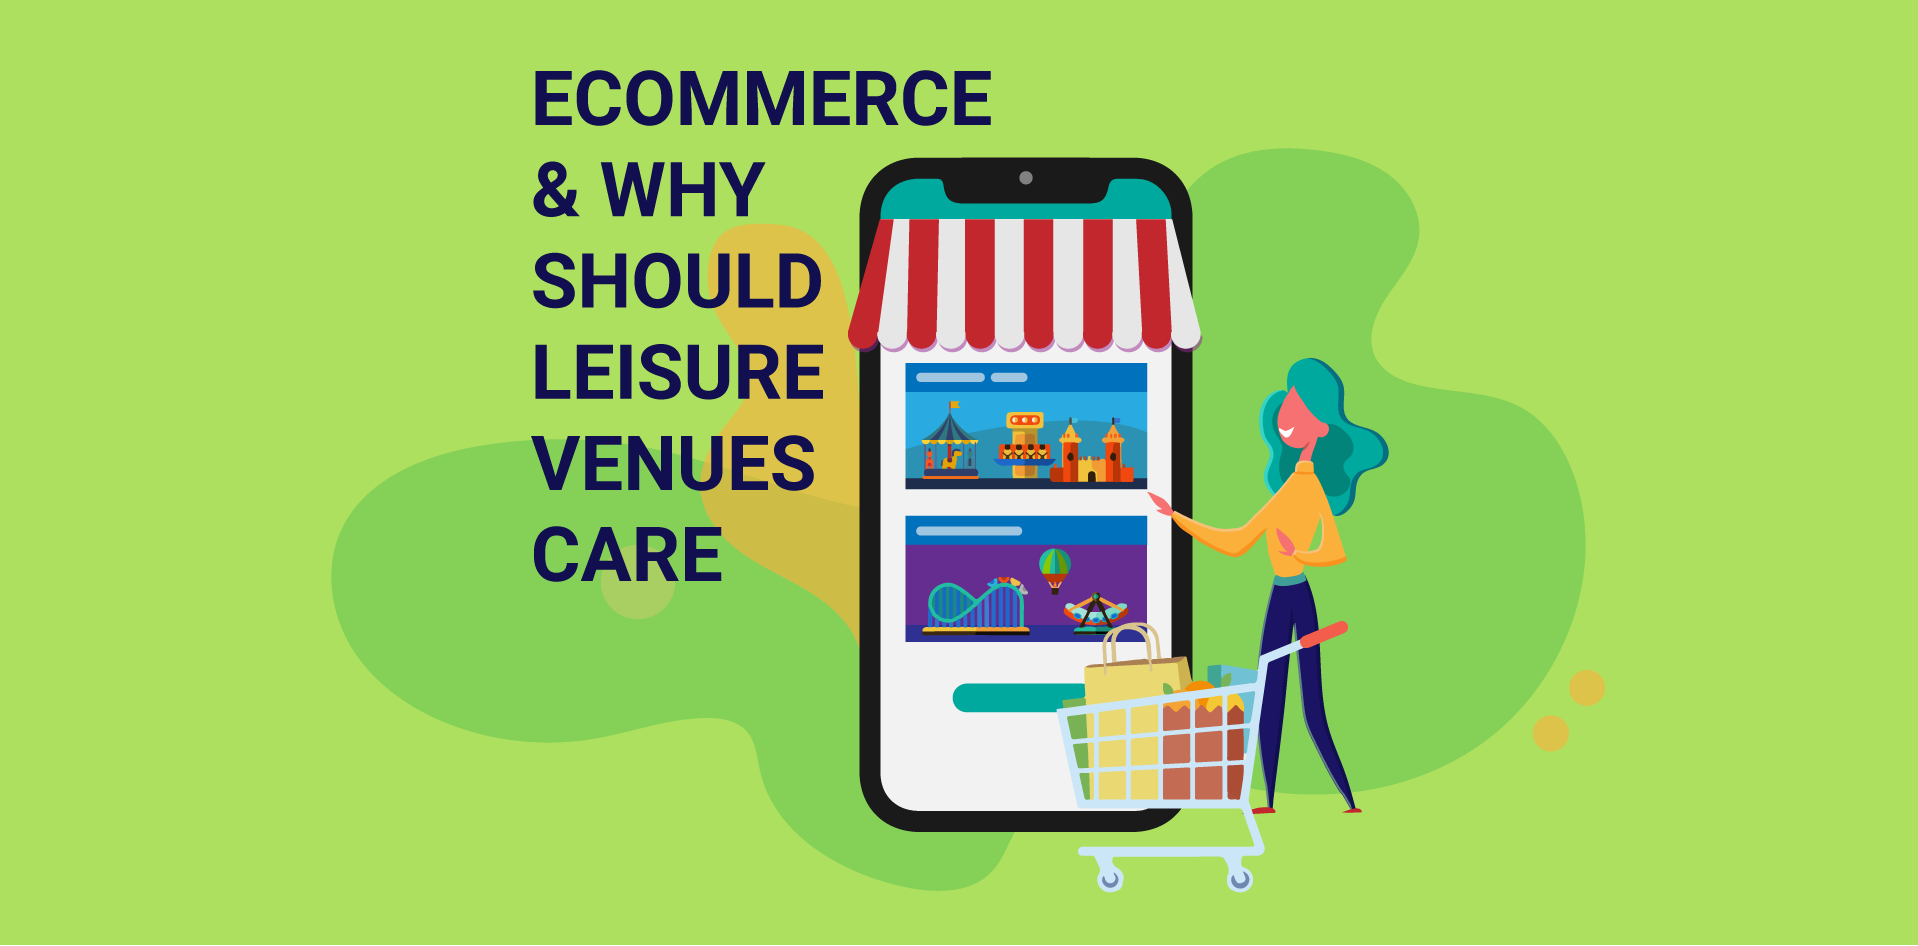 eCommerce tips for leisure venues and attractions